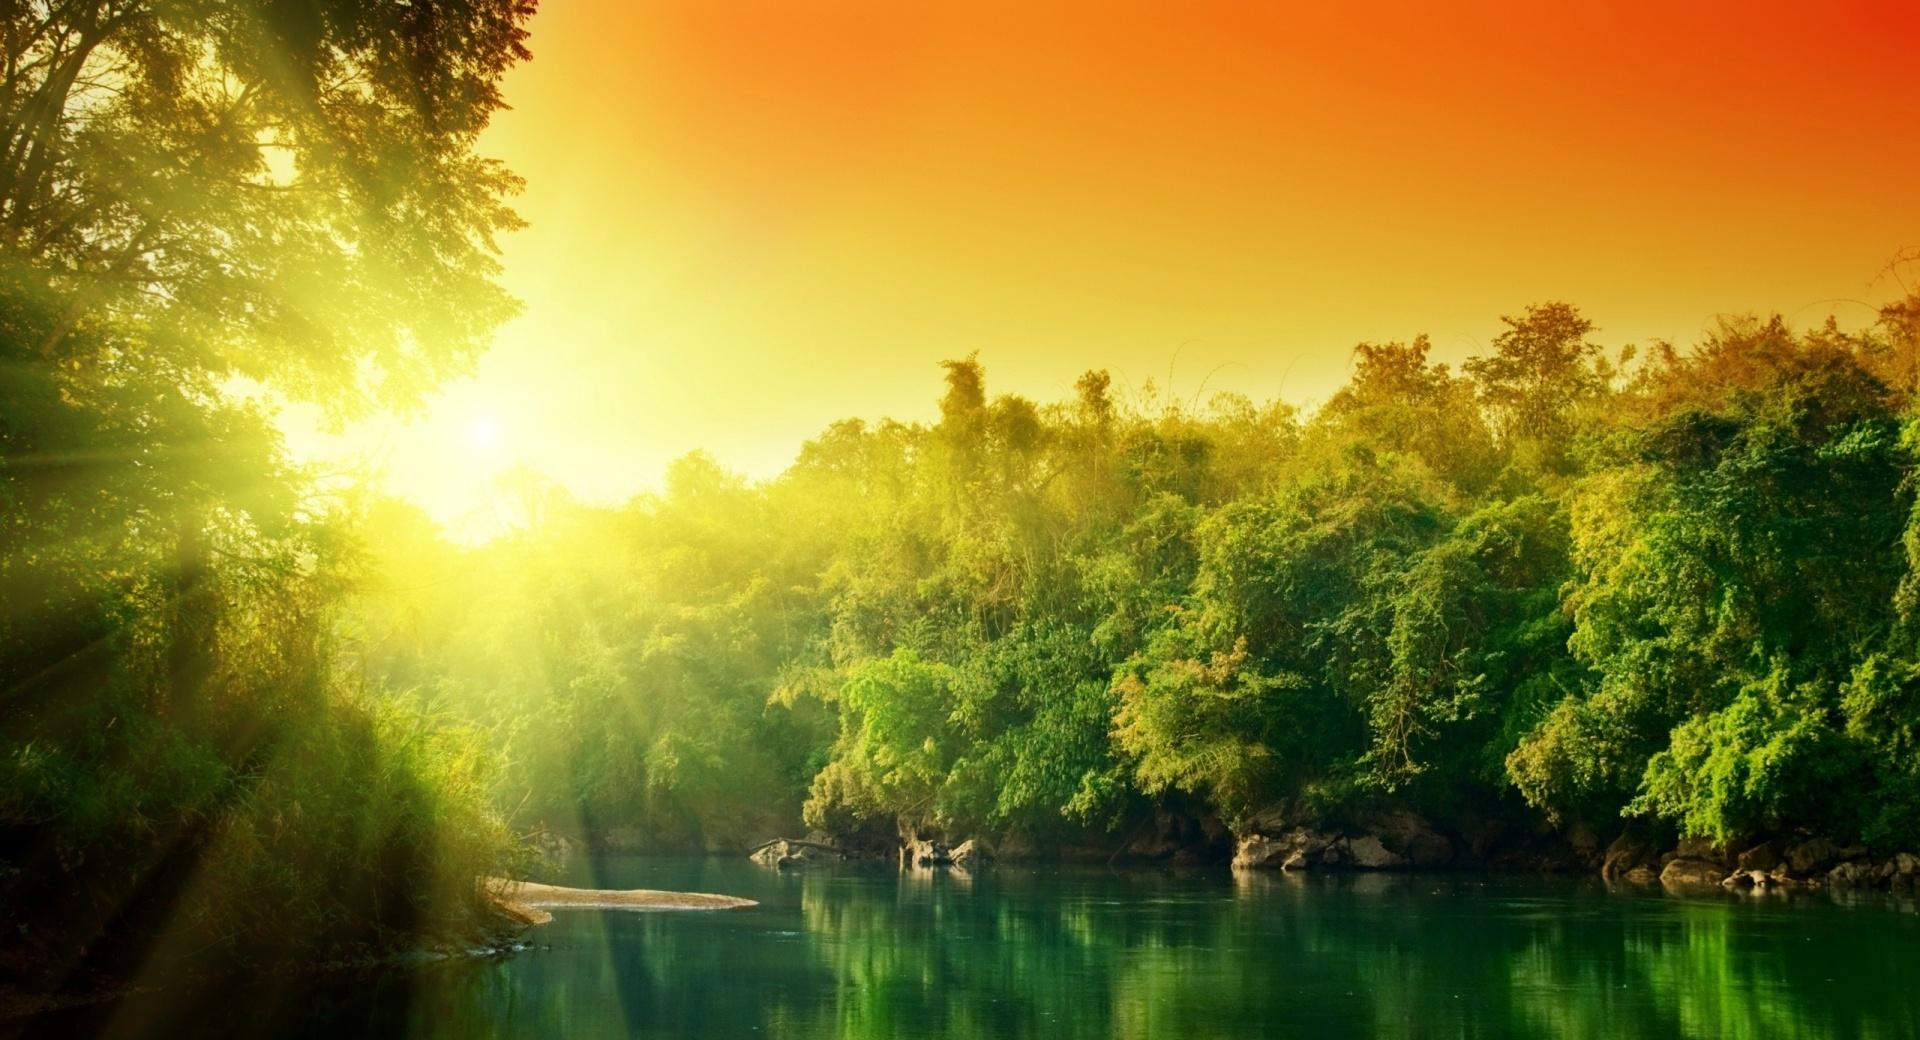 Forest River wallpapers HD quality